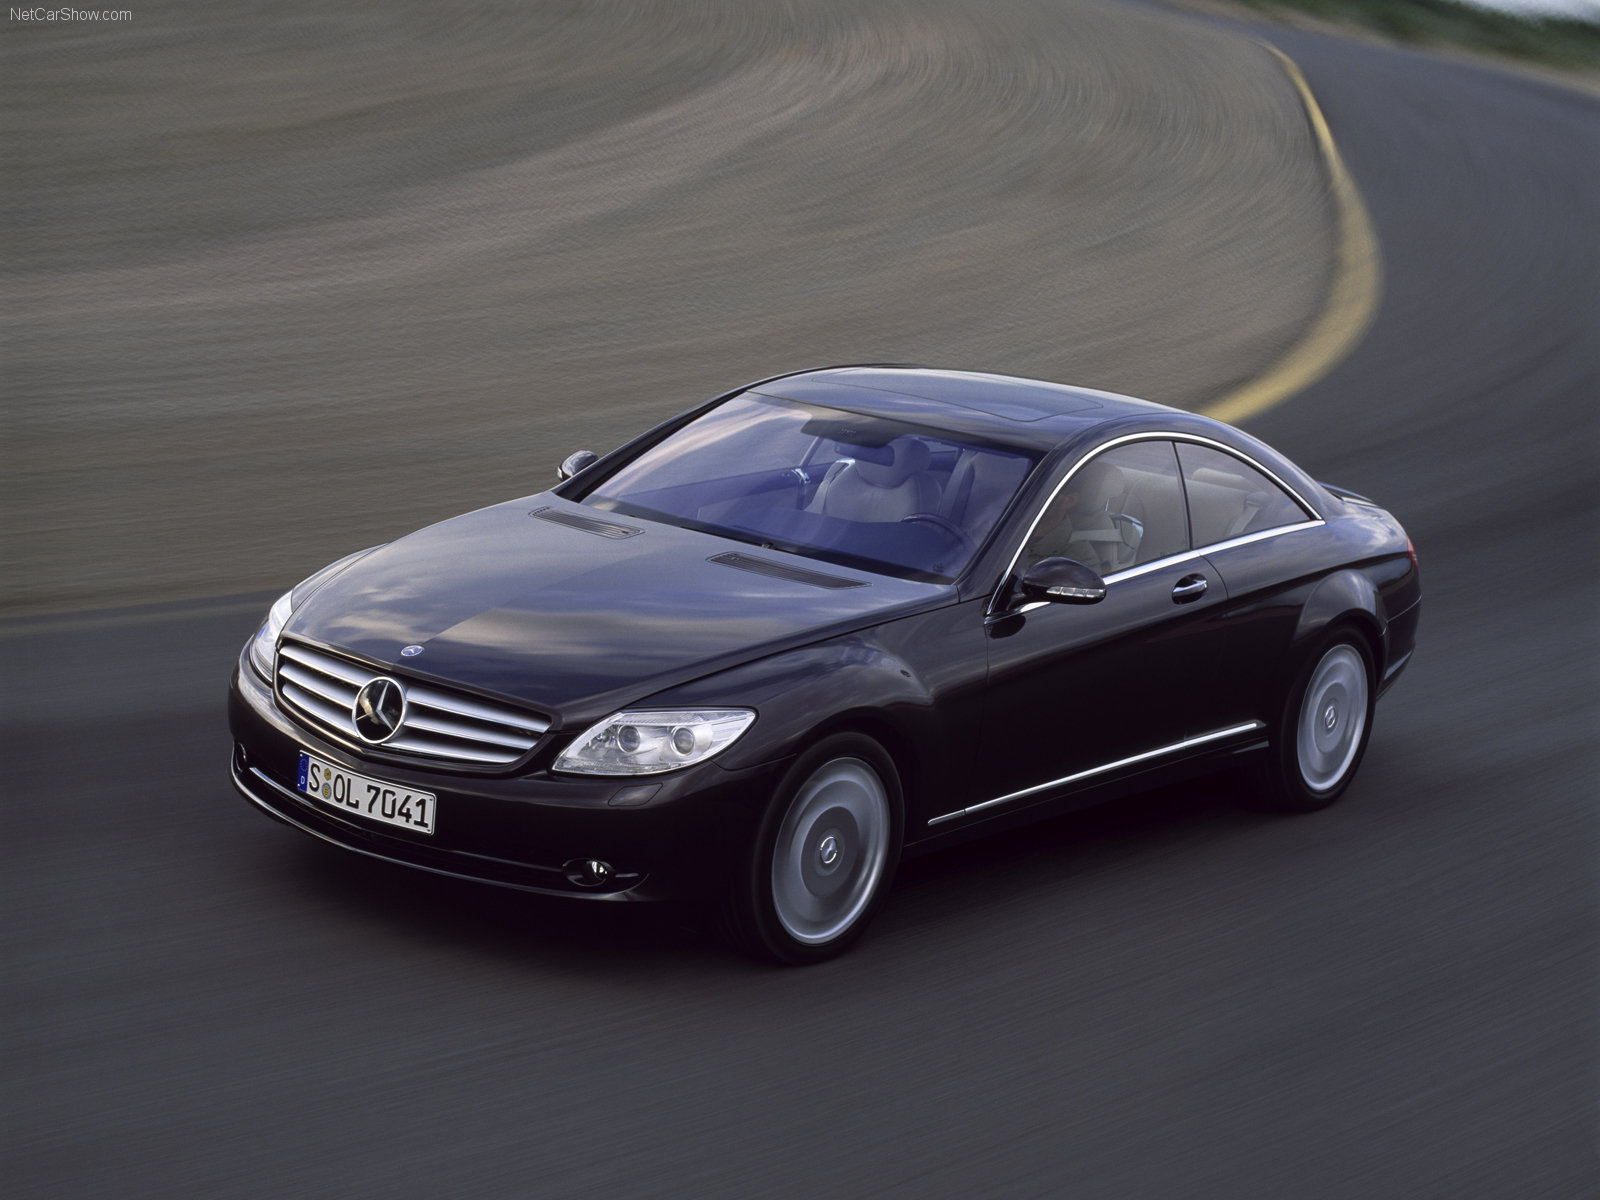 mercedes benz cl class w216 photos photogallery with 25. Black Bedroom Furniture Sets. Home Design Ideas